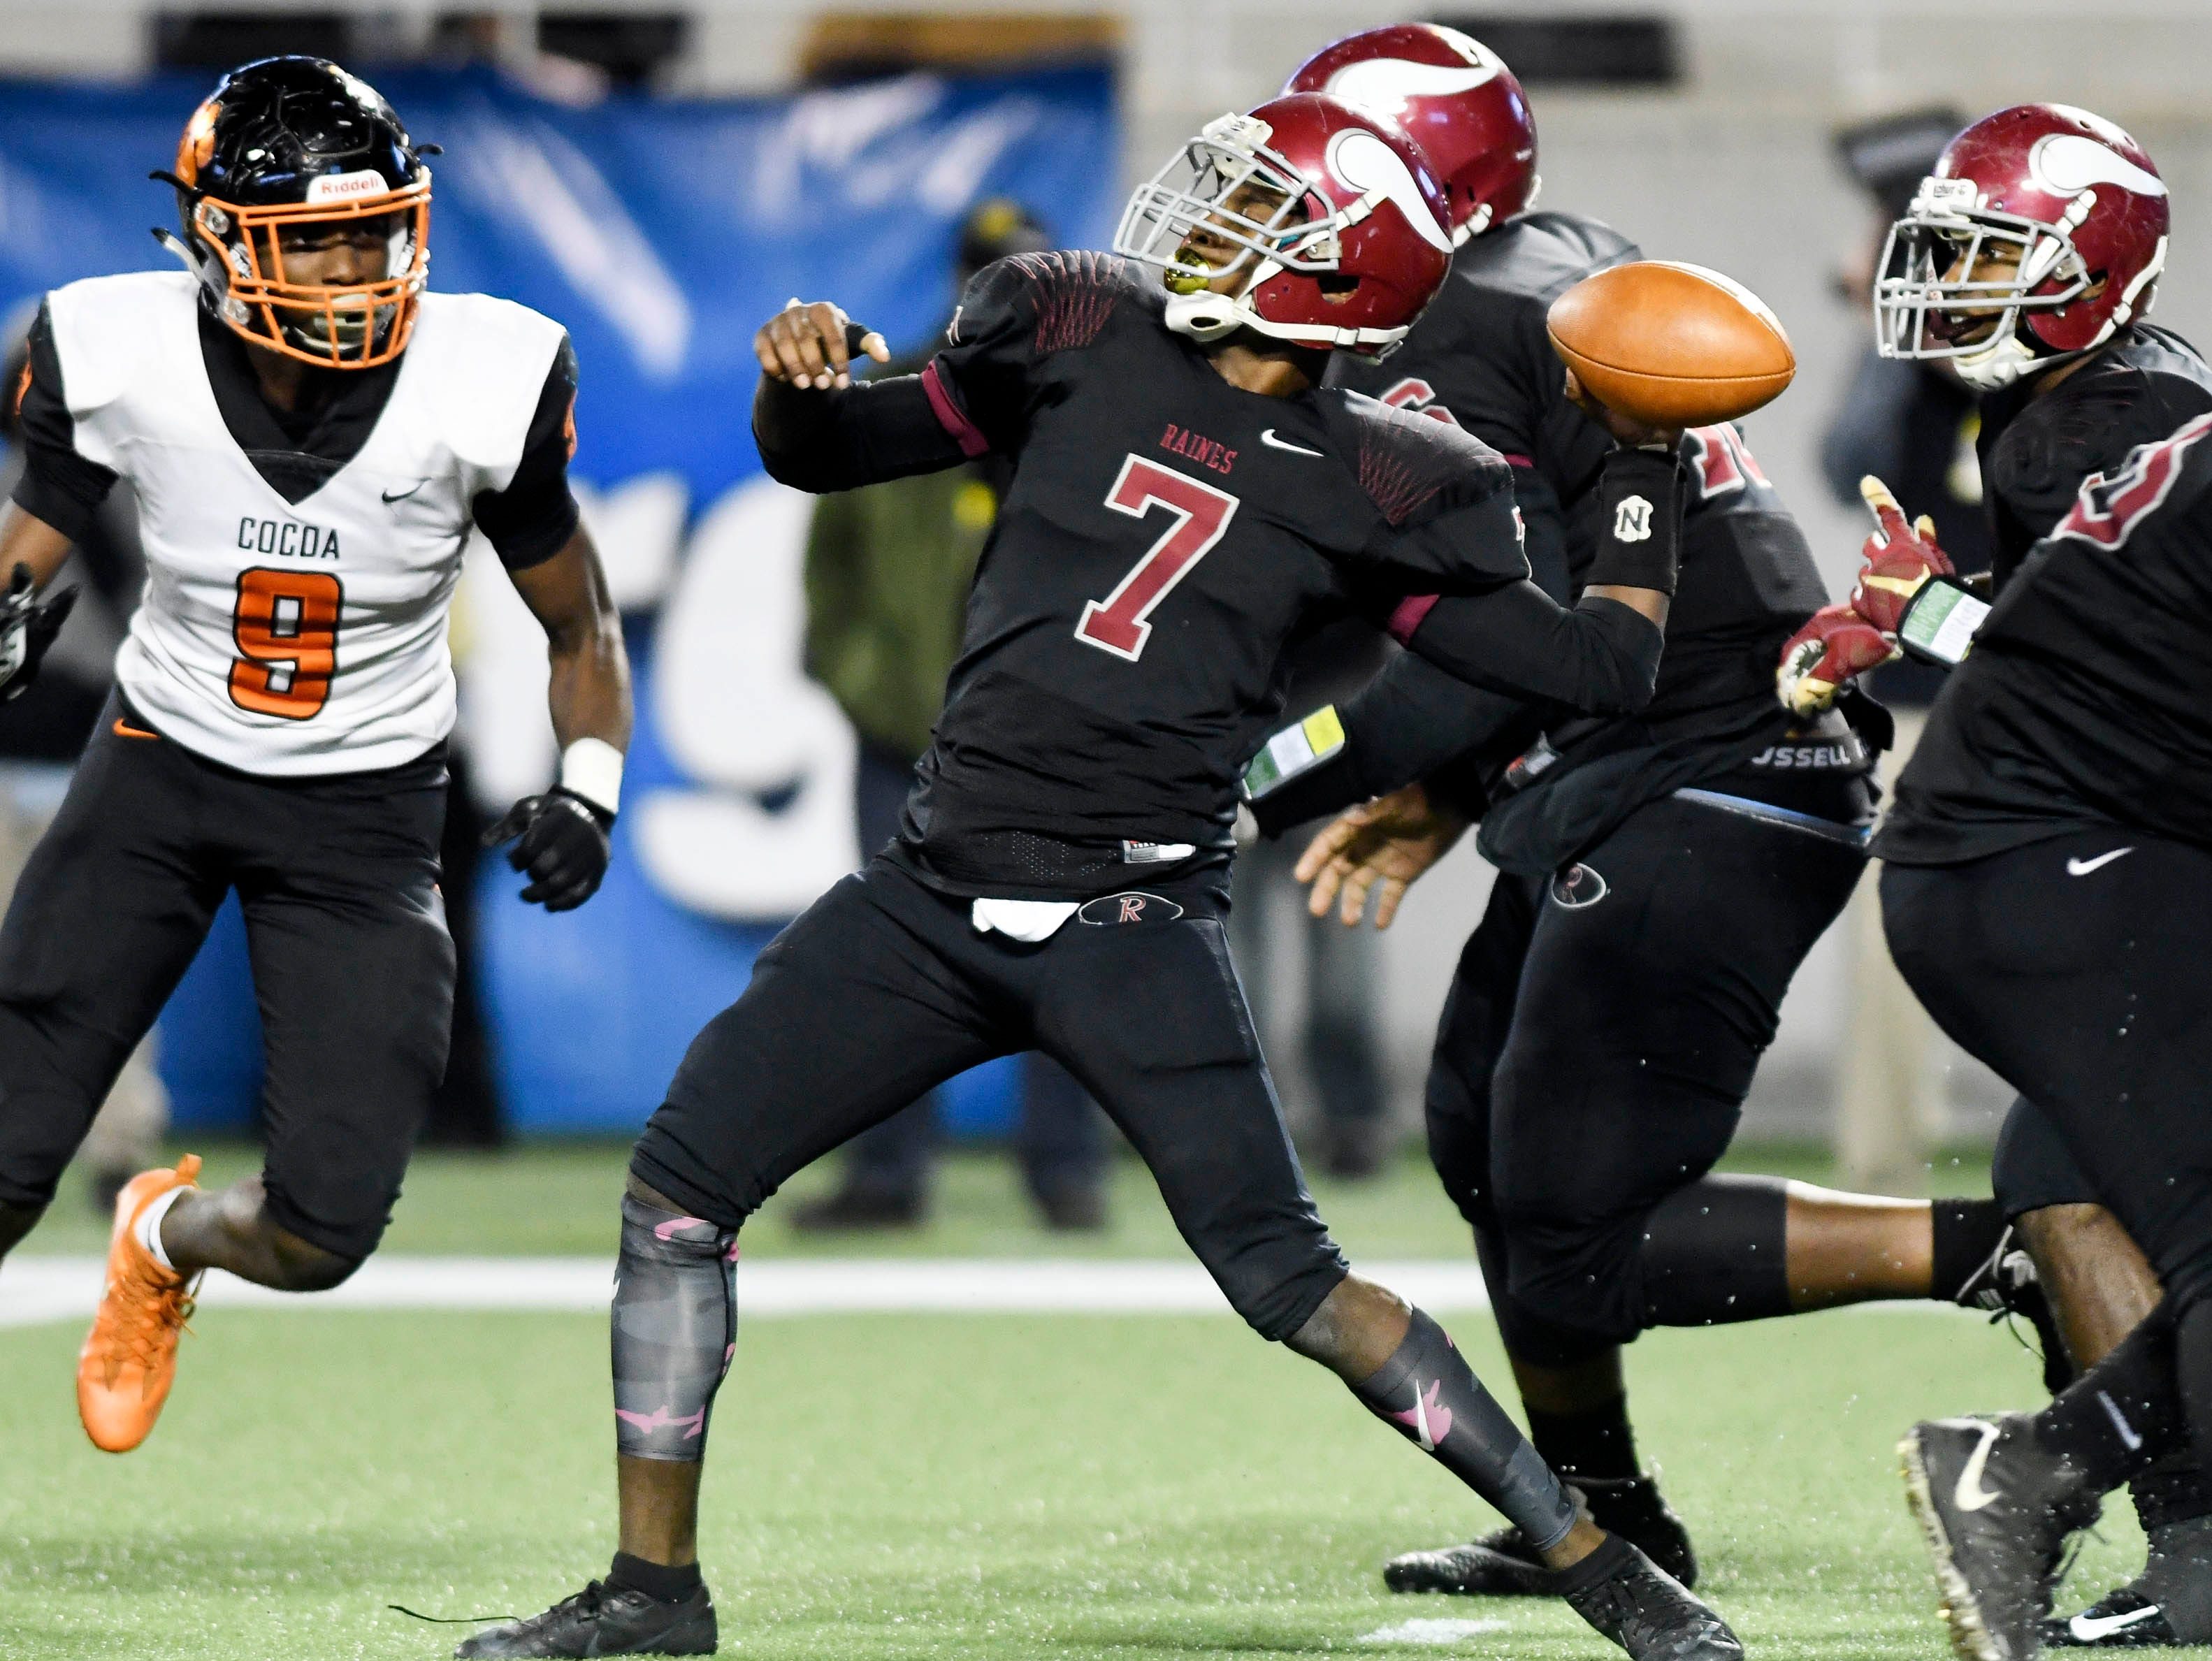 Jacorey Rivers of Raines passes under pressure during Thursday's Class 4A football state championship.